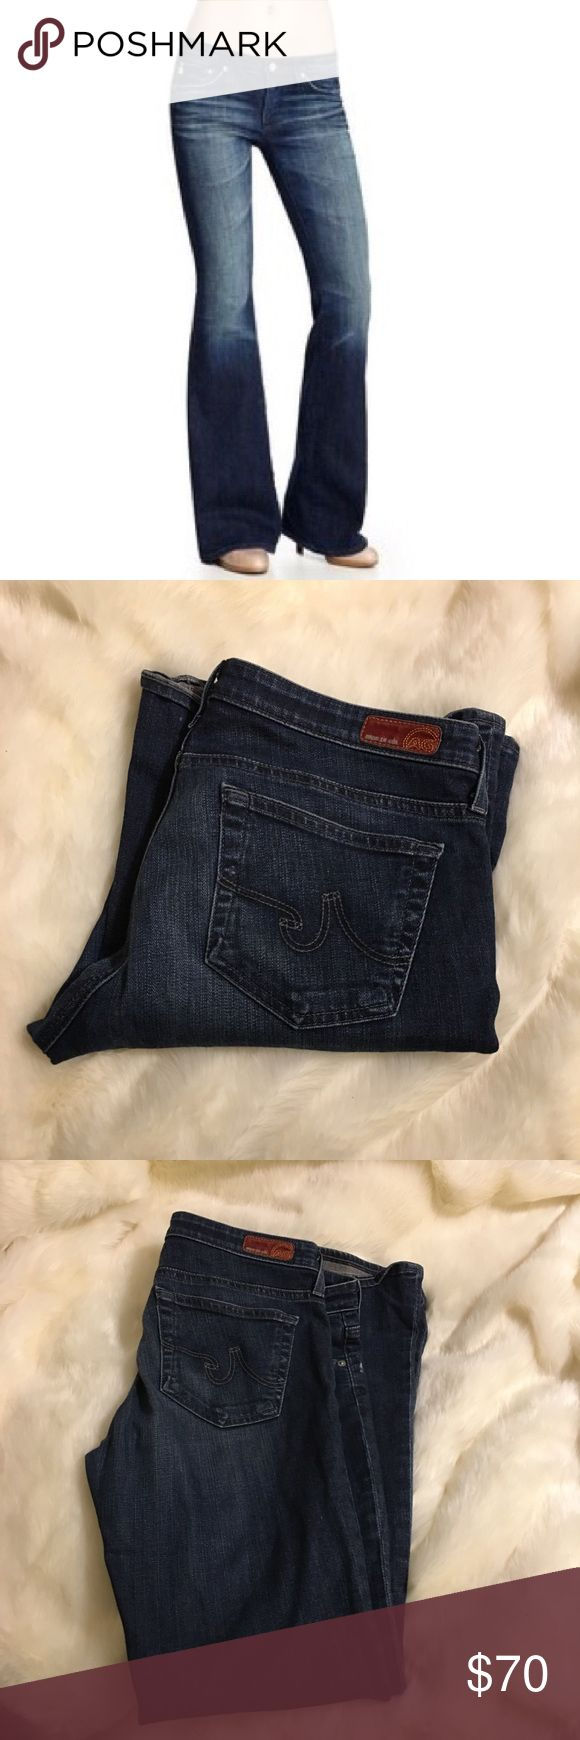 AG Adriano Goldschmied Belle Petite Jeans AG Adriano Goldschmied Belle Petite Jeans. Size 30R. Some wear and tear on hem. AG Adriano Goldschmied Jeans Flare & Wide Leg